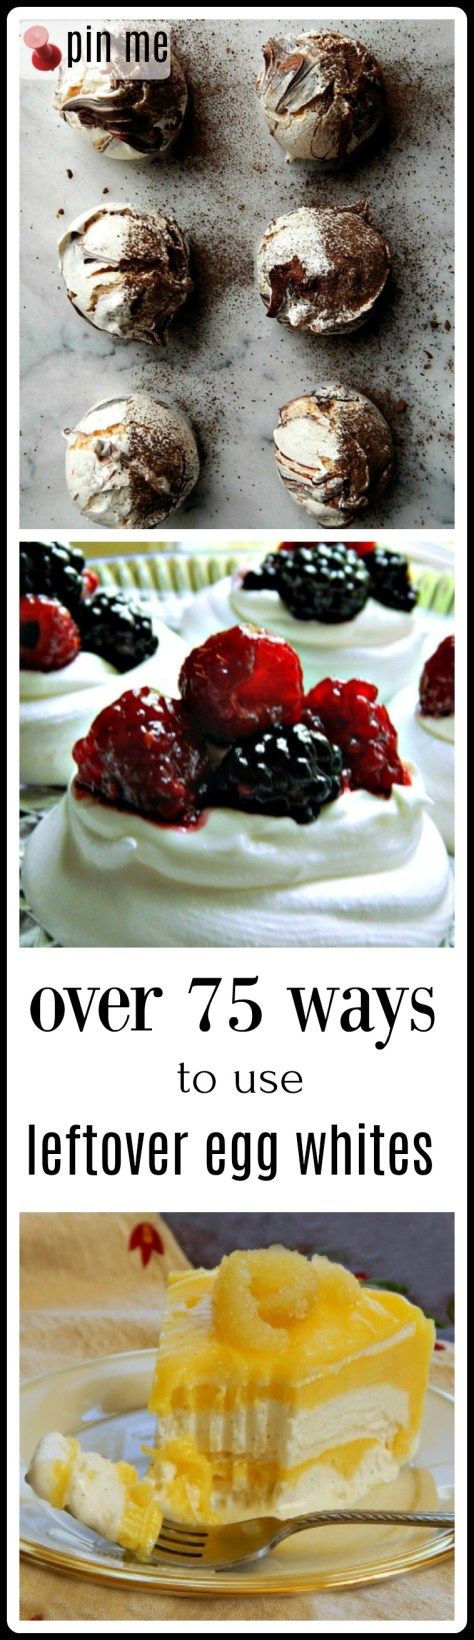 Over 75 ways to use leftover egg wihites and they aren't all sweet and they aren't all breakfast!!